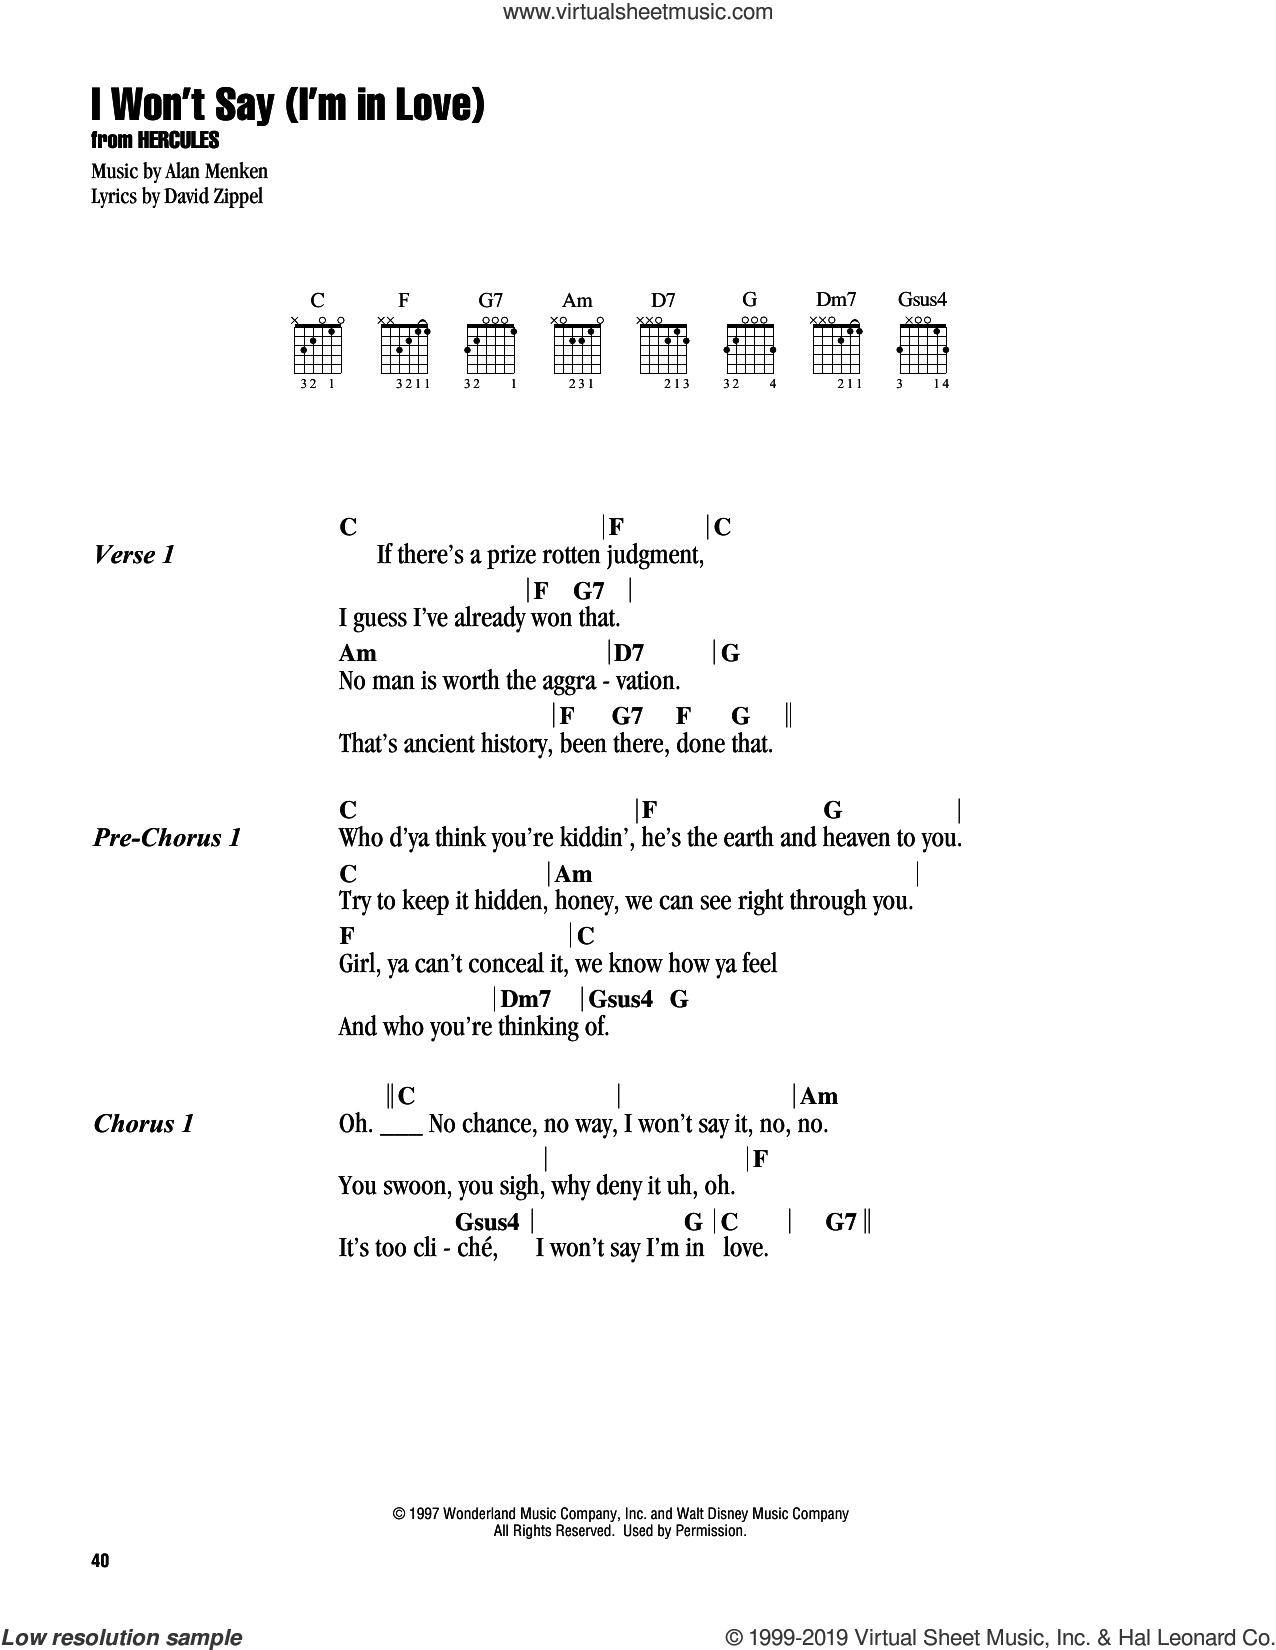 I Won't Say (I'm In Love) (from Hercules) sheet music for guitar (chords) by Alan Menken and David Zippel, intermediate skill level